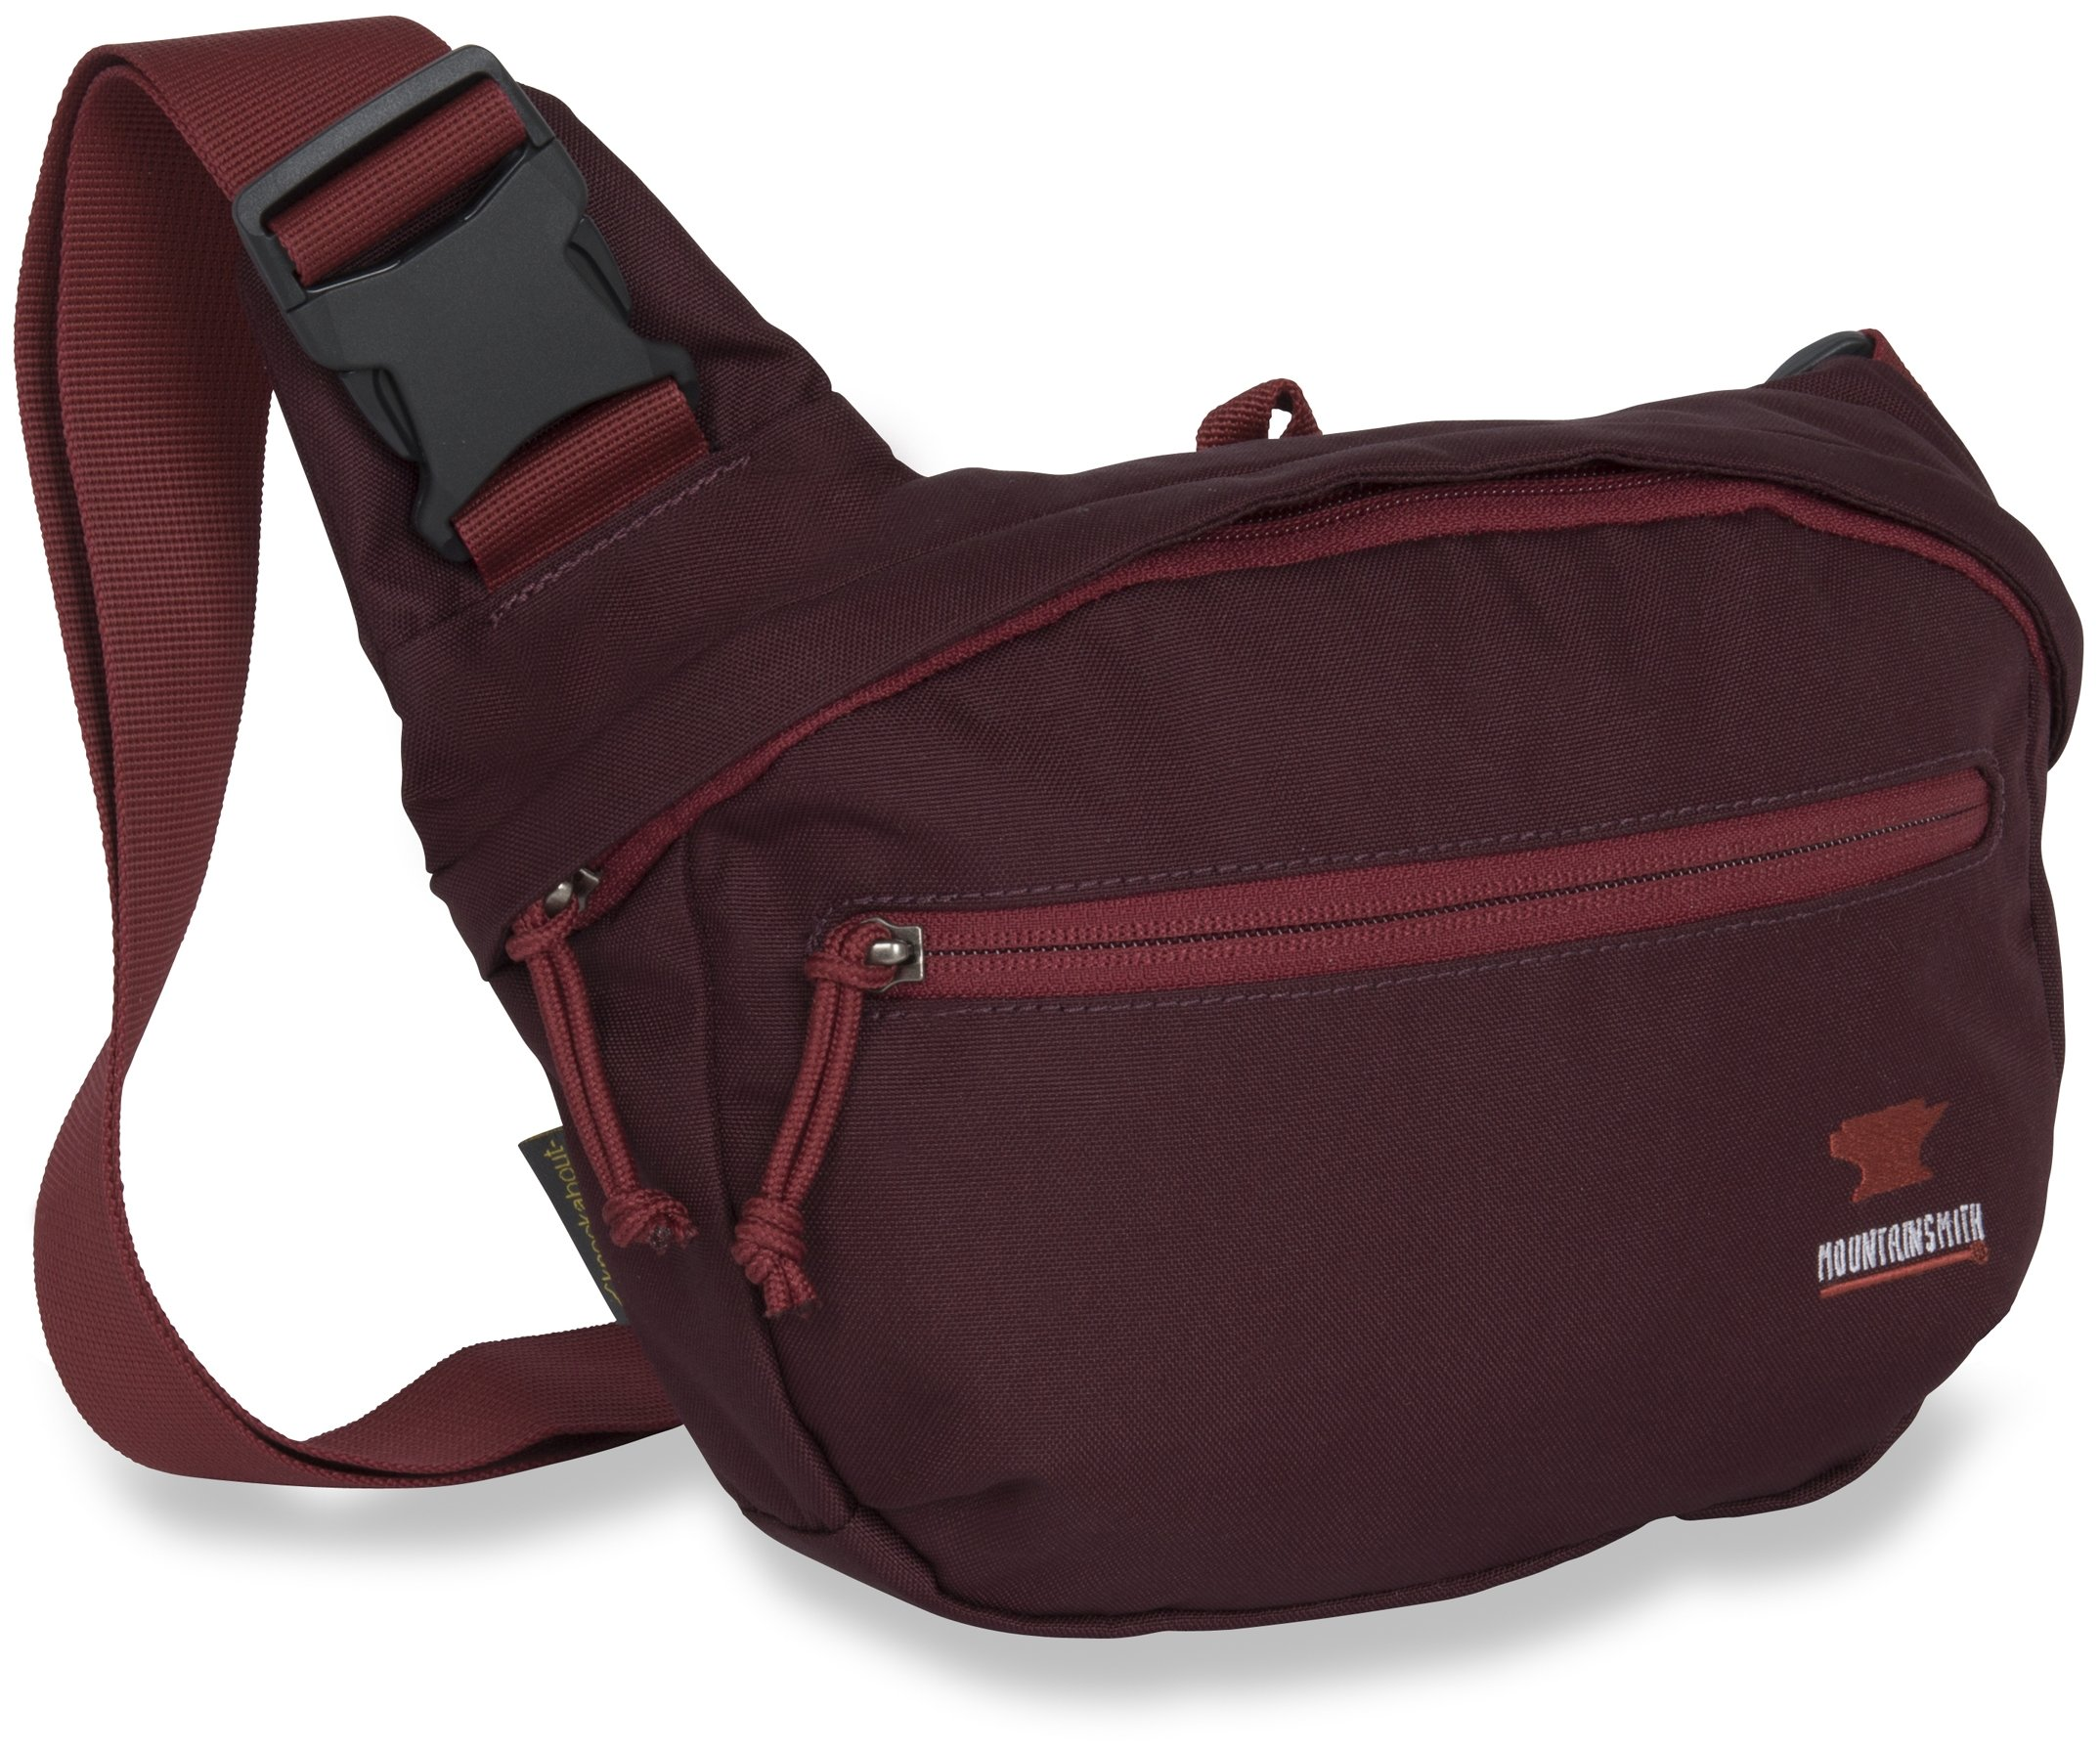 Mountainsmith Knockabout Lumbar Pack, Huckleberry by Mountainsmith